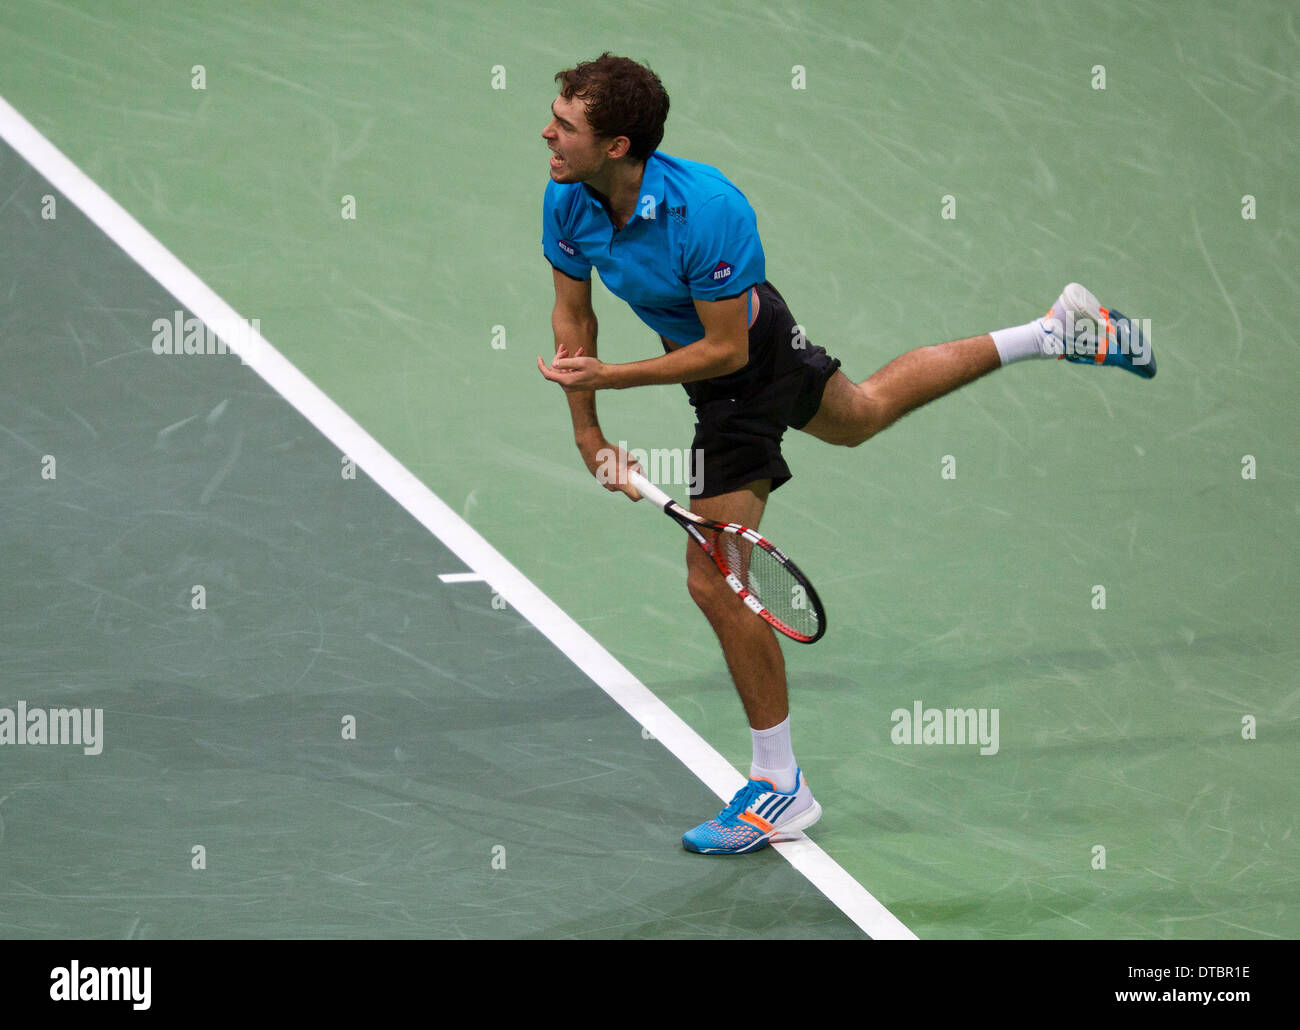 Rotterdam, The Netherlands. 14th Feb, 2014. Jerzy Janowicz(POL) in his match against Tomas Berdych(TSJ) at the ABN AMRO World tennis Tournament Photo:Tennisimages/Henk Koster/Alamy Live News - Stock Image